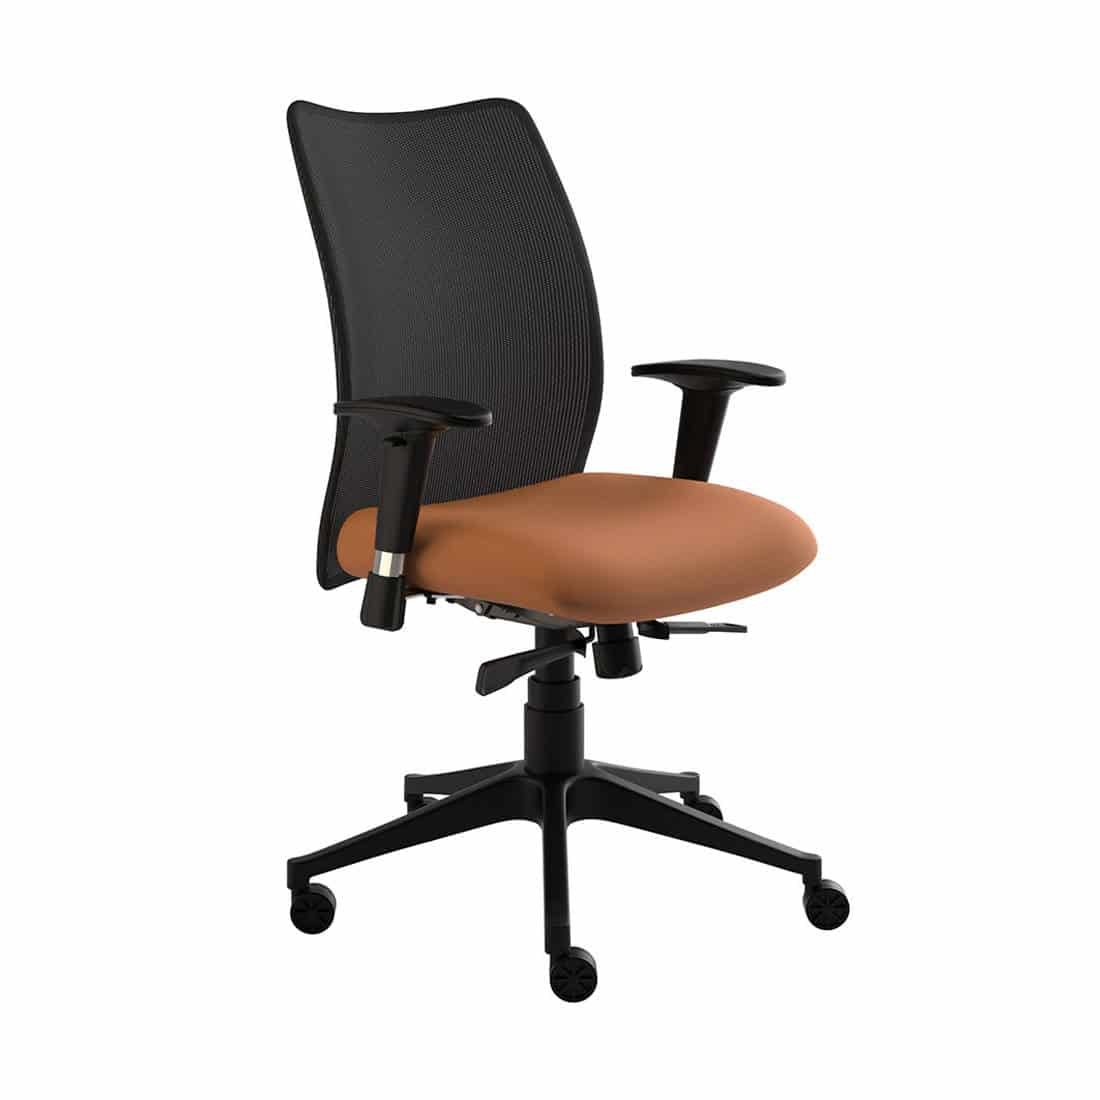 chair stool argos round occasional chairs compel mesh back desk joyce contract interiors